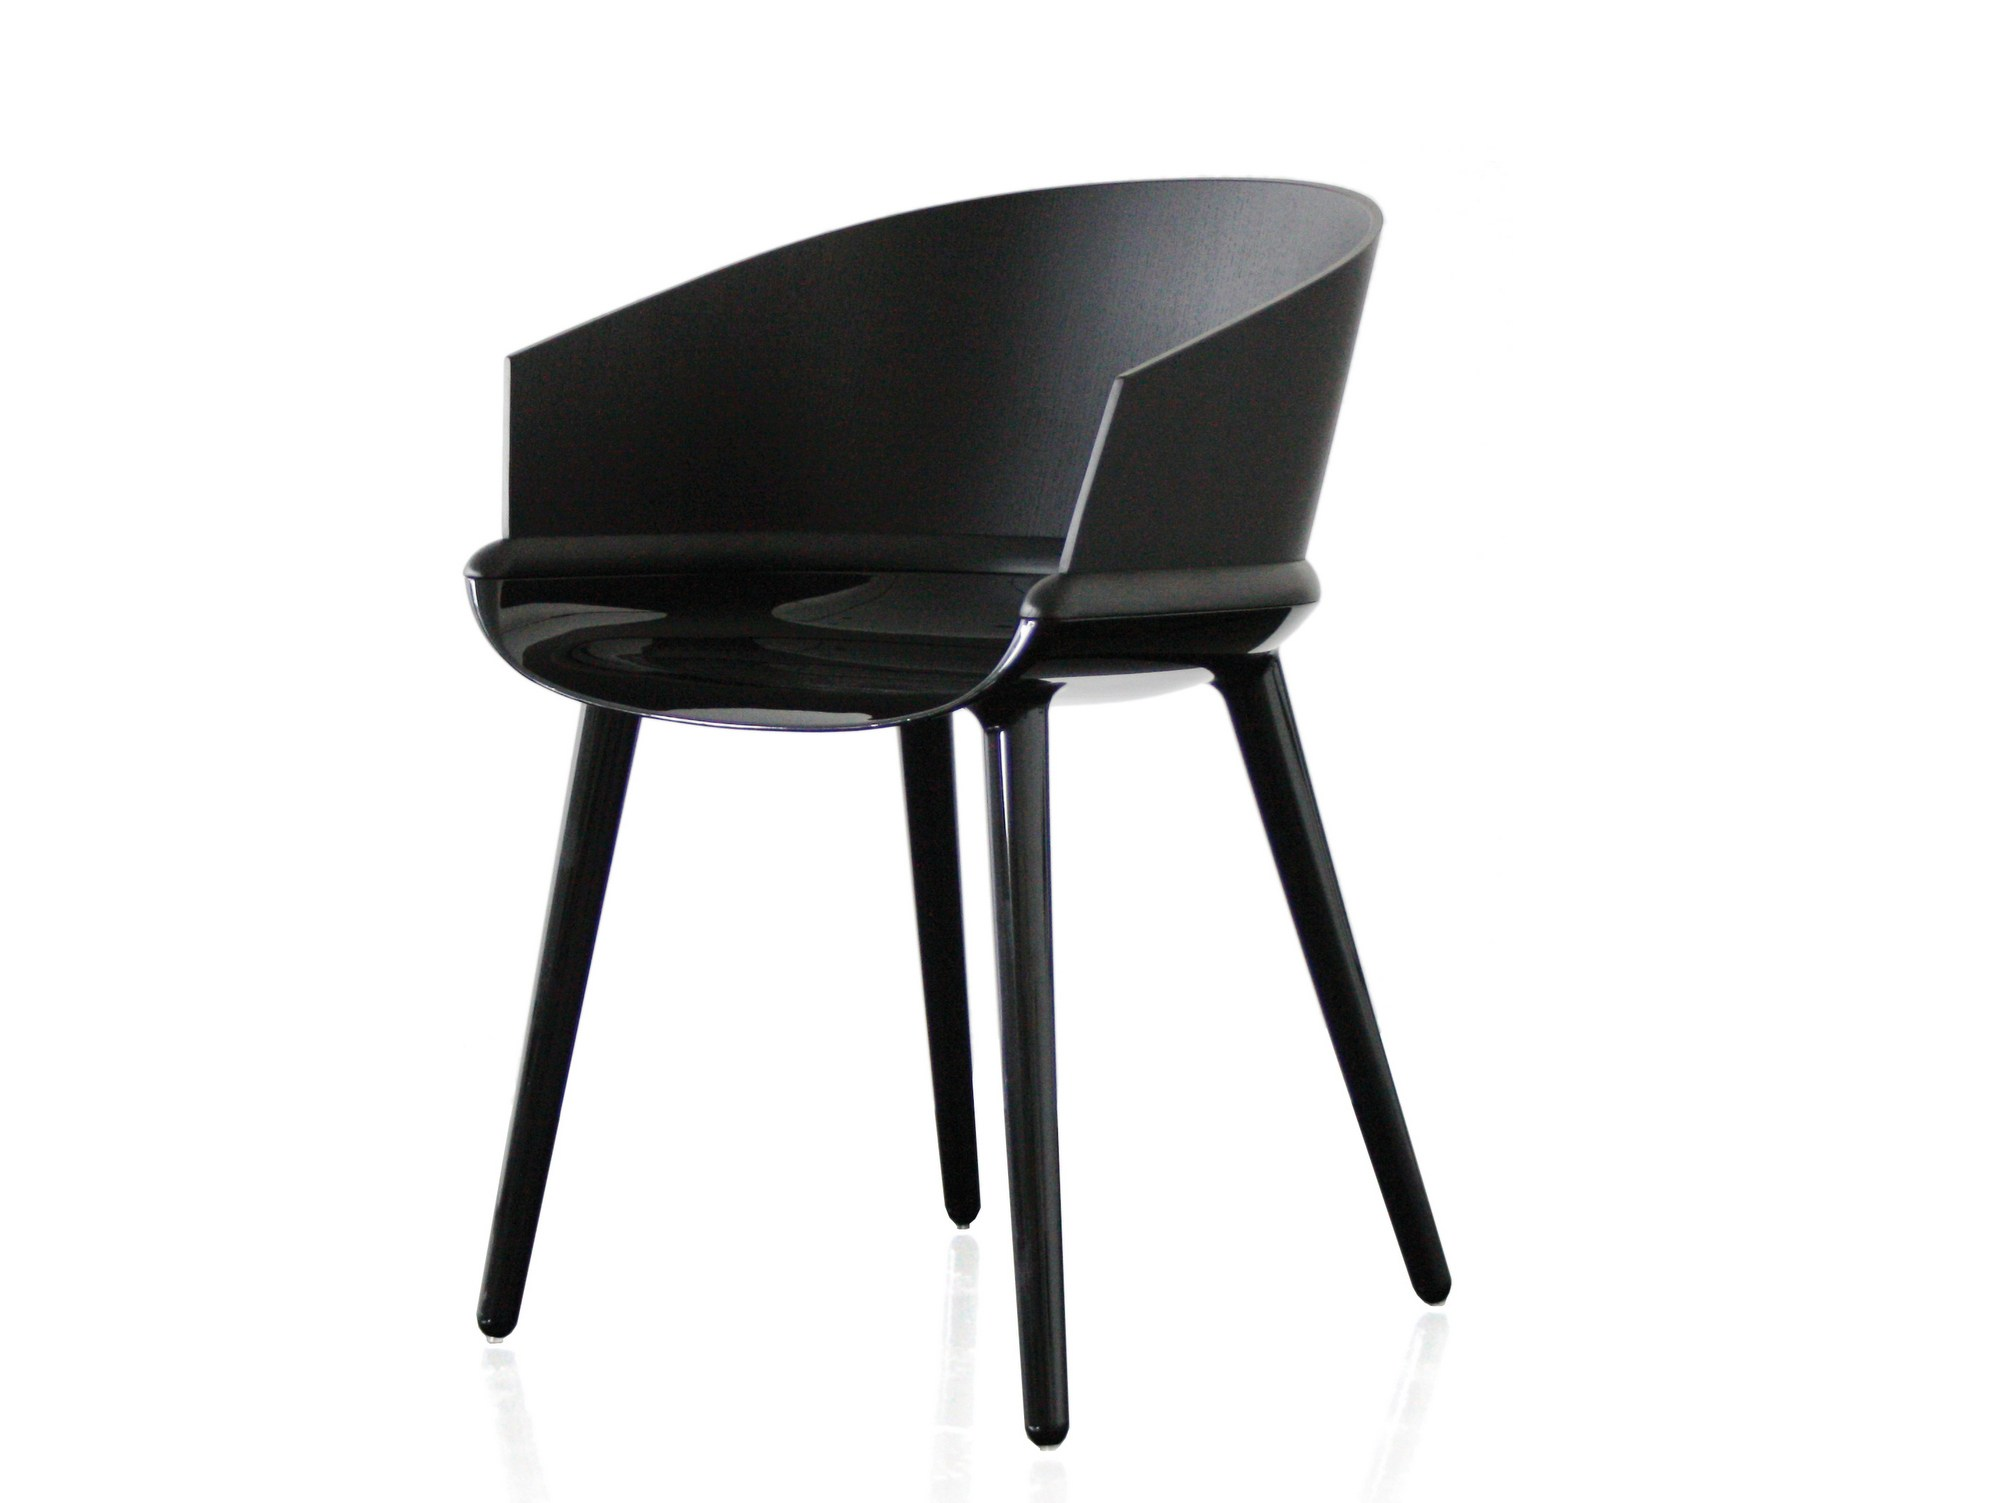 Multi layer wood chair with armrests cyborg ply cyborg for Magis cyborg